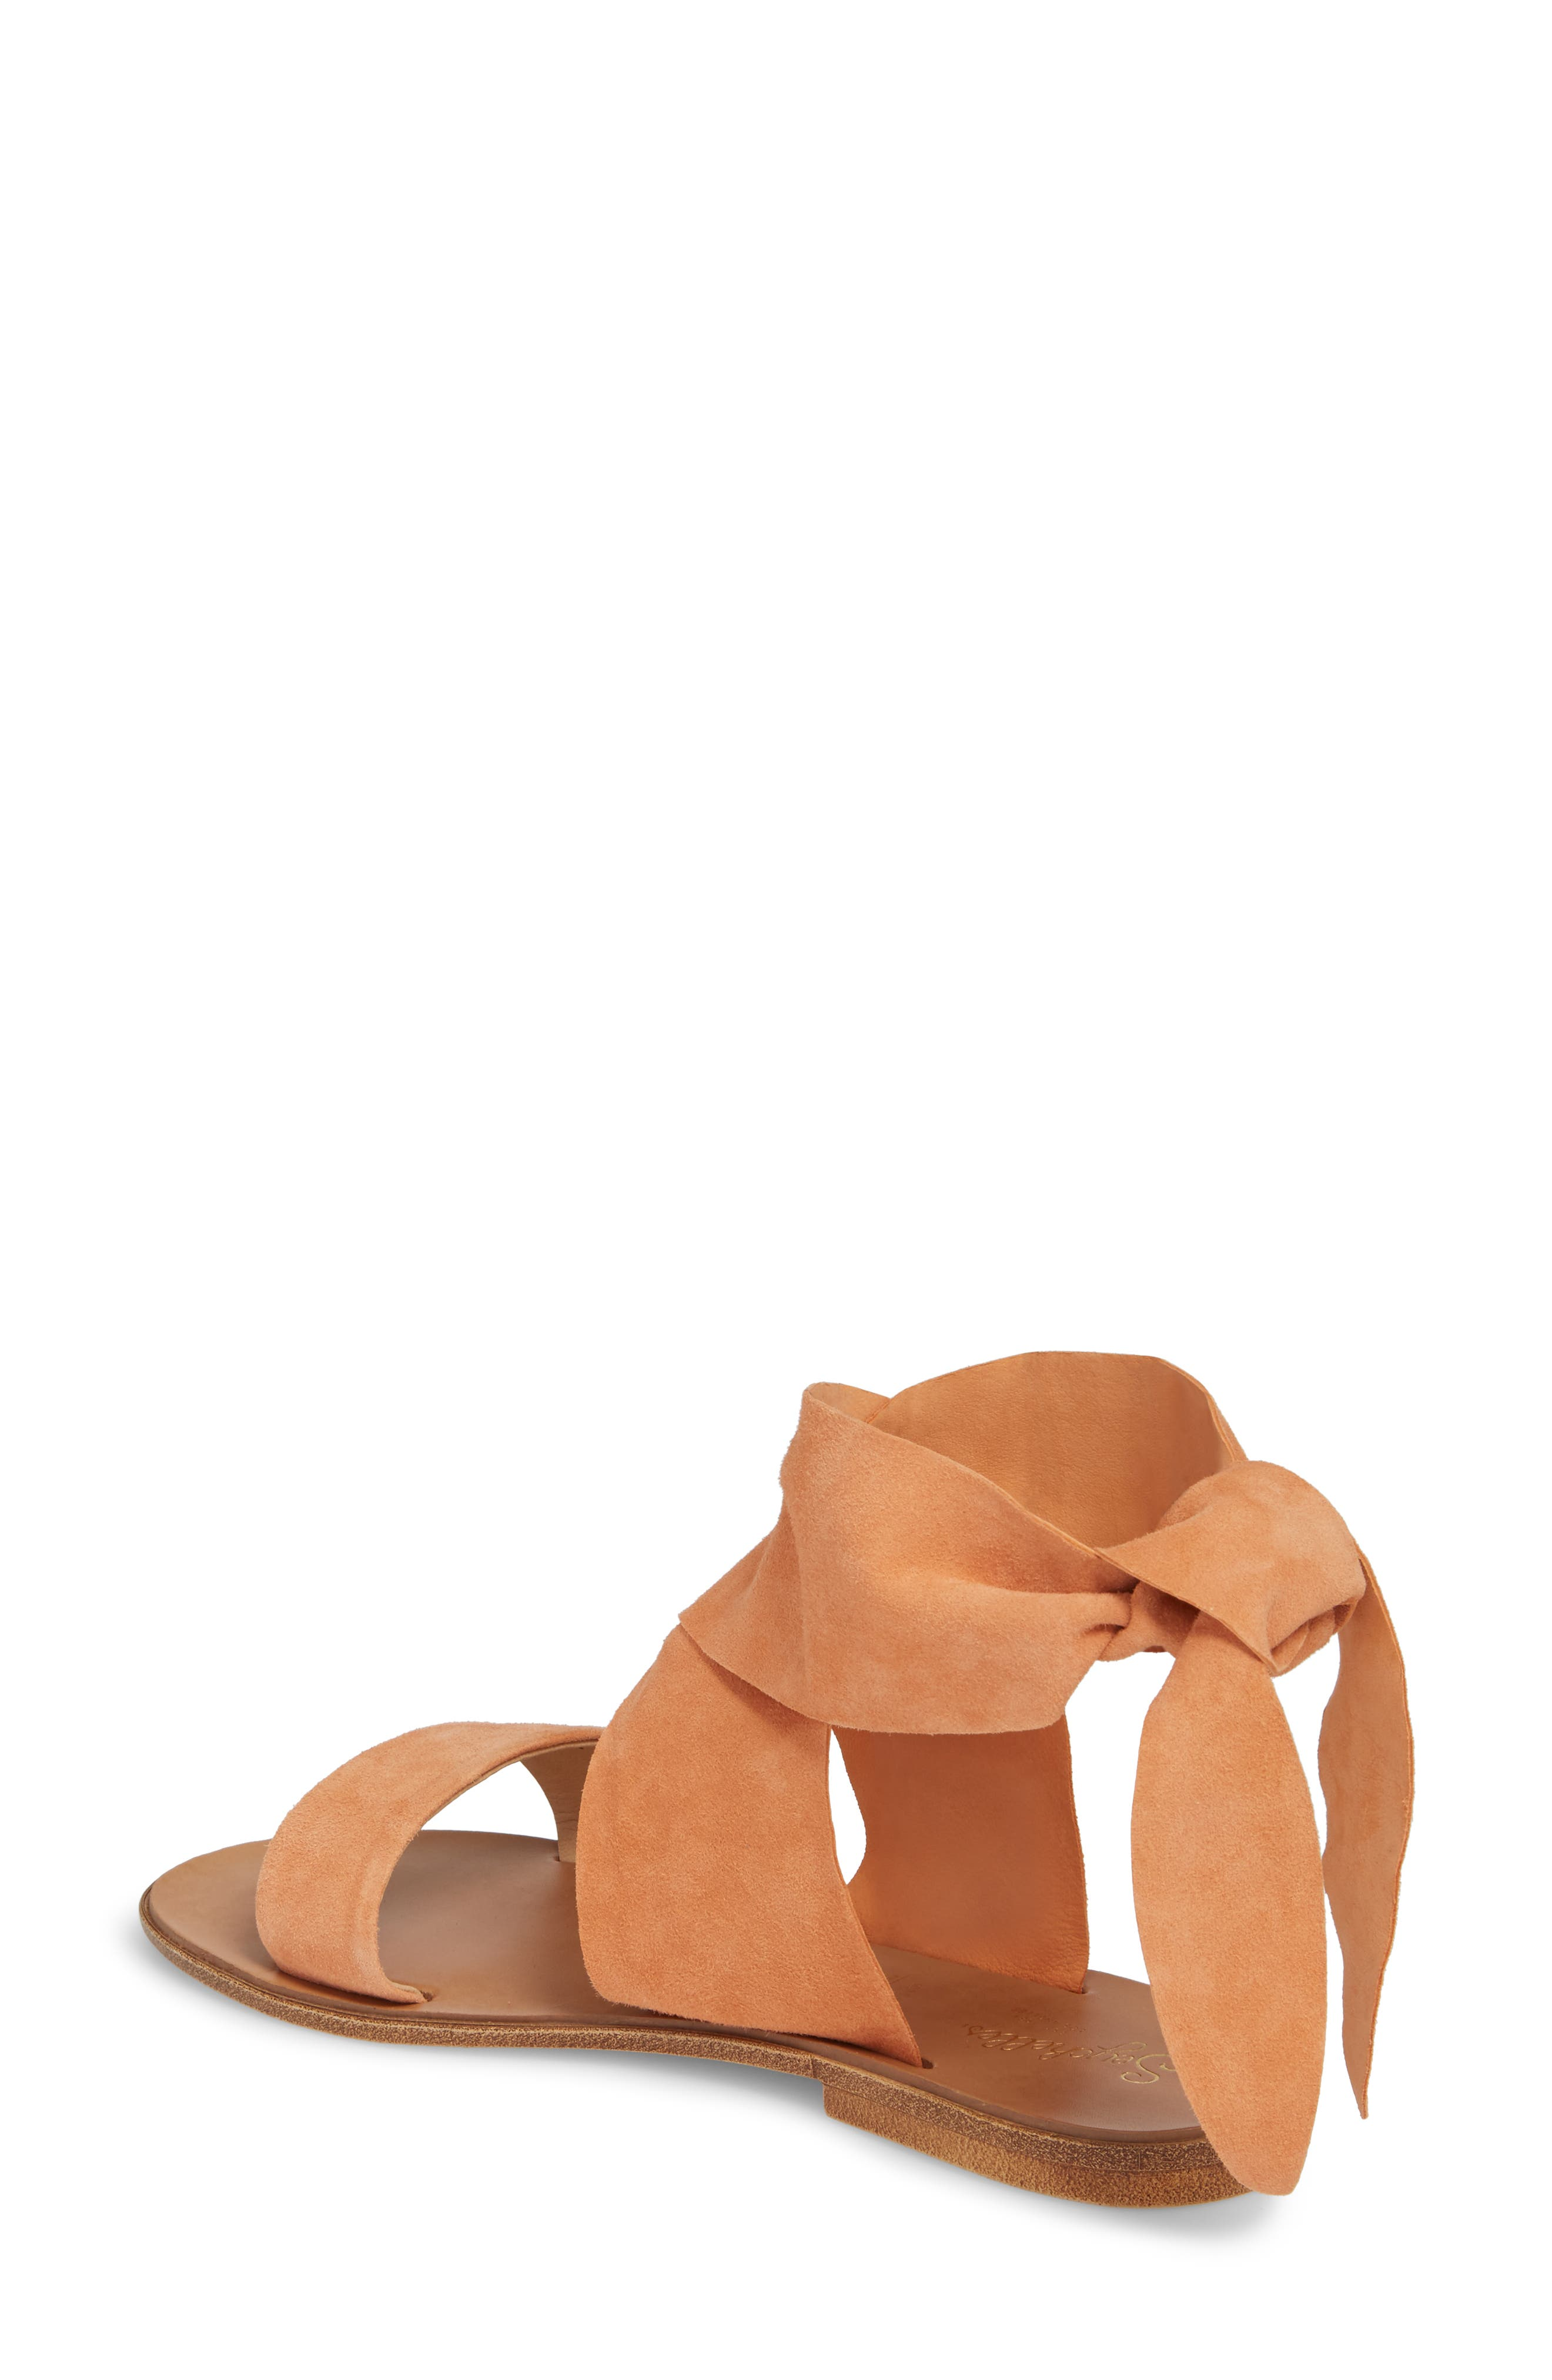 Cruisin Ankle Wrap Sandal,                             Alternate thumbnail 2, color,                             PEACH SUEDE